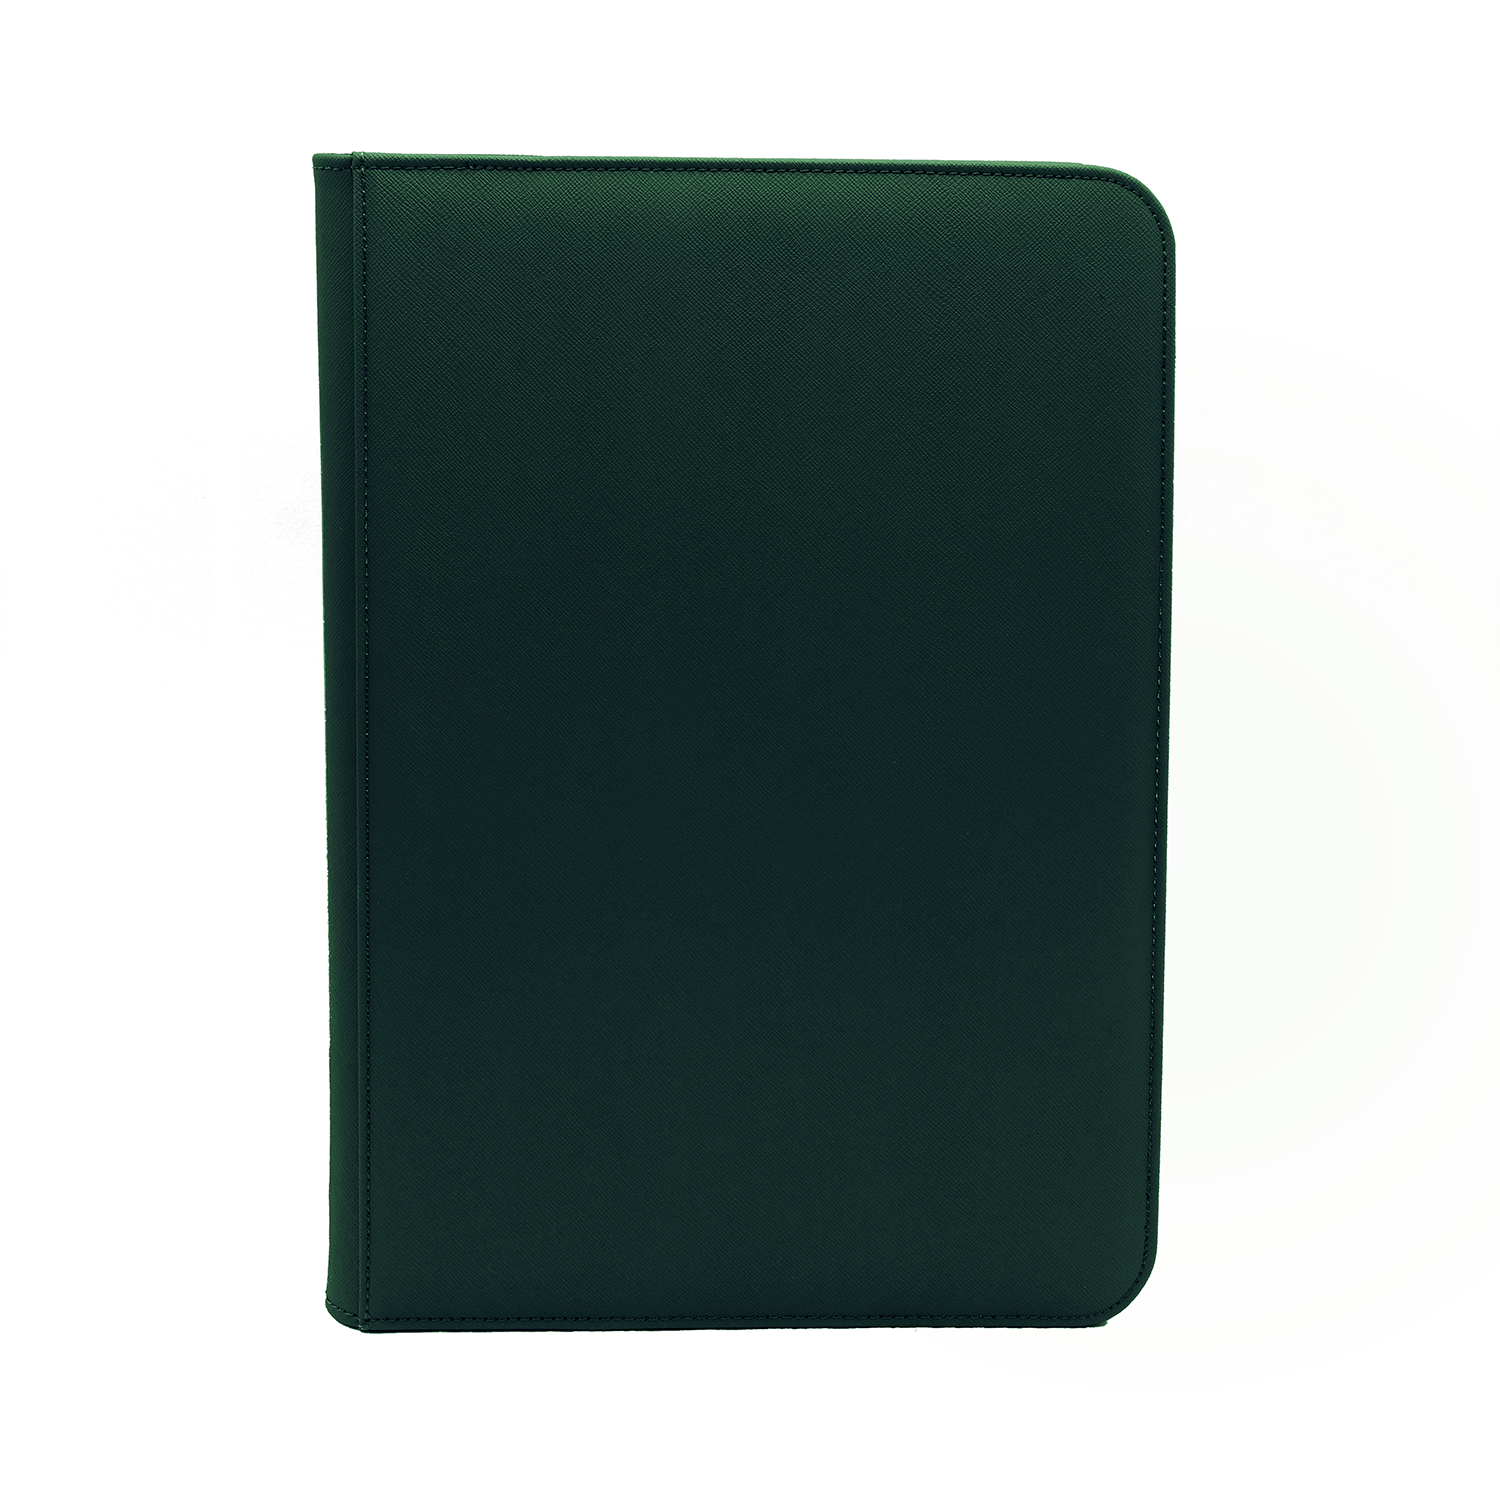 Dex Protection: Dex Zipper Binder 9 - Green